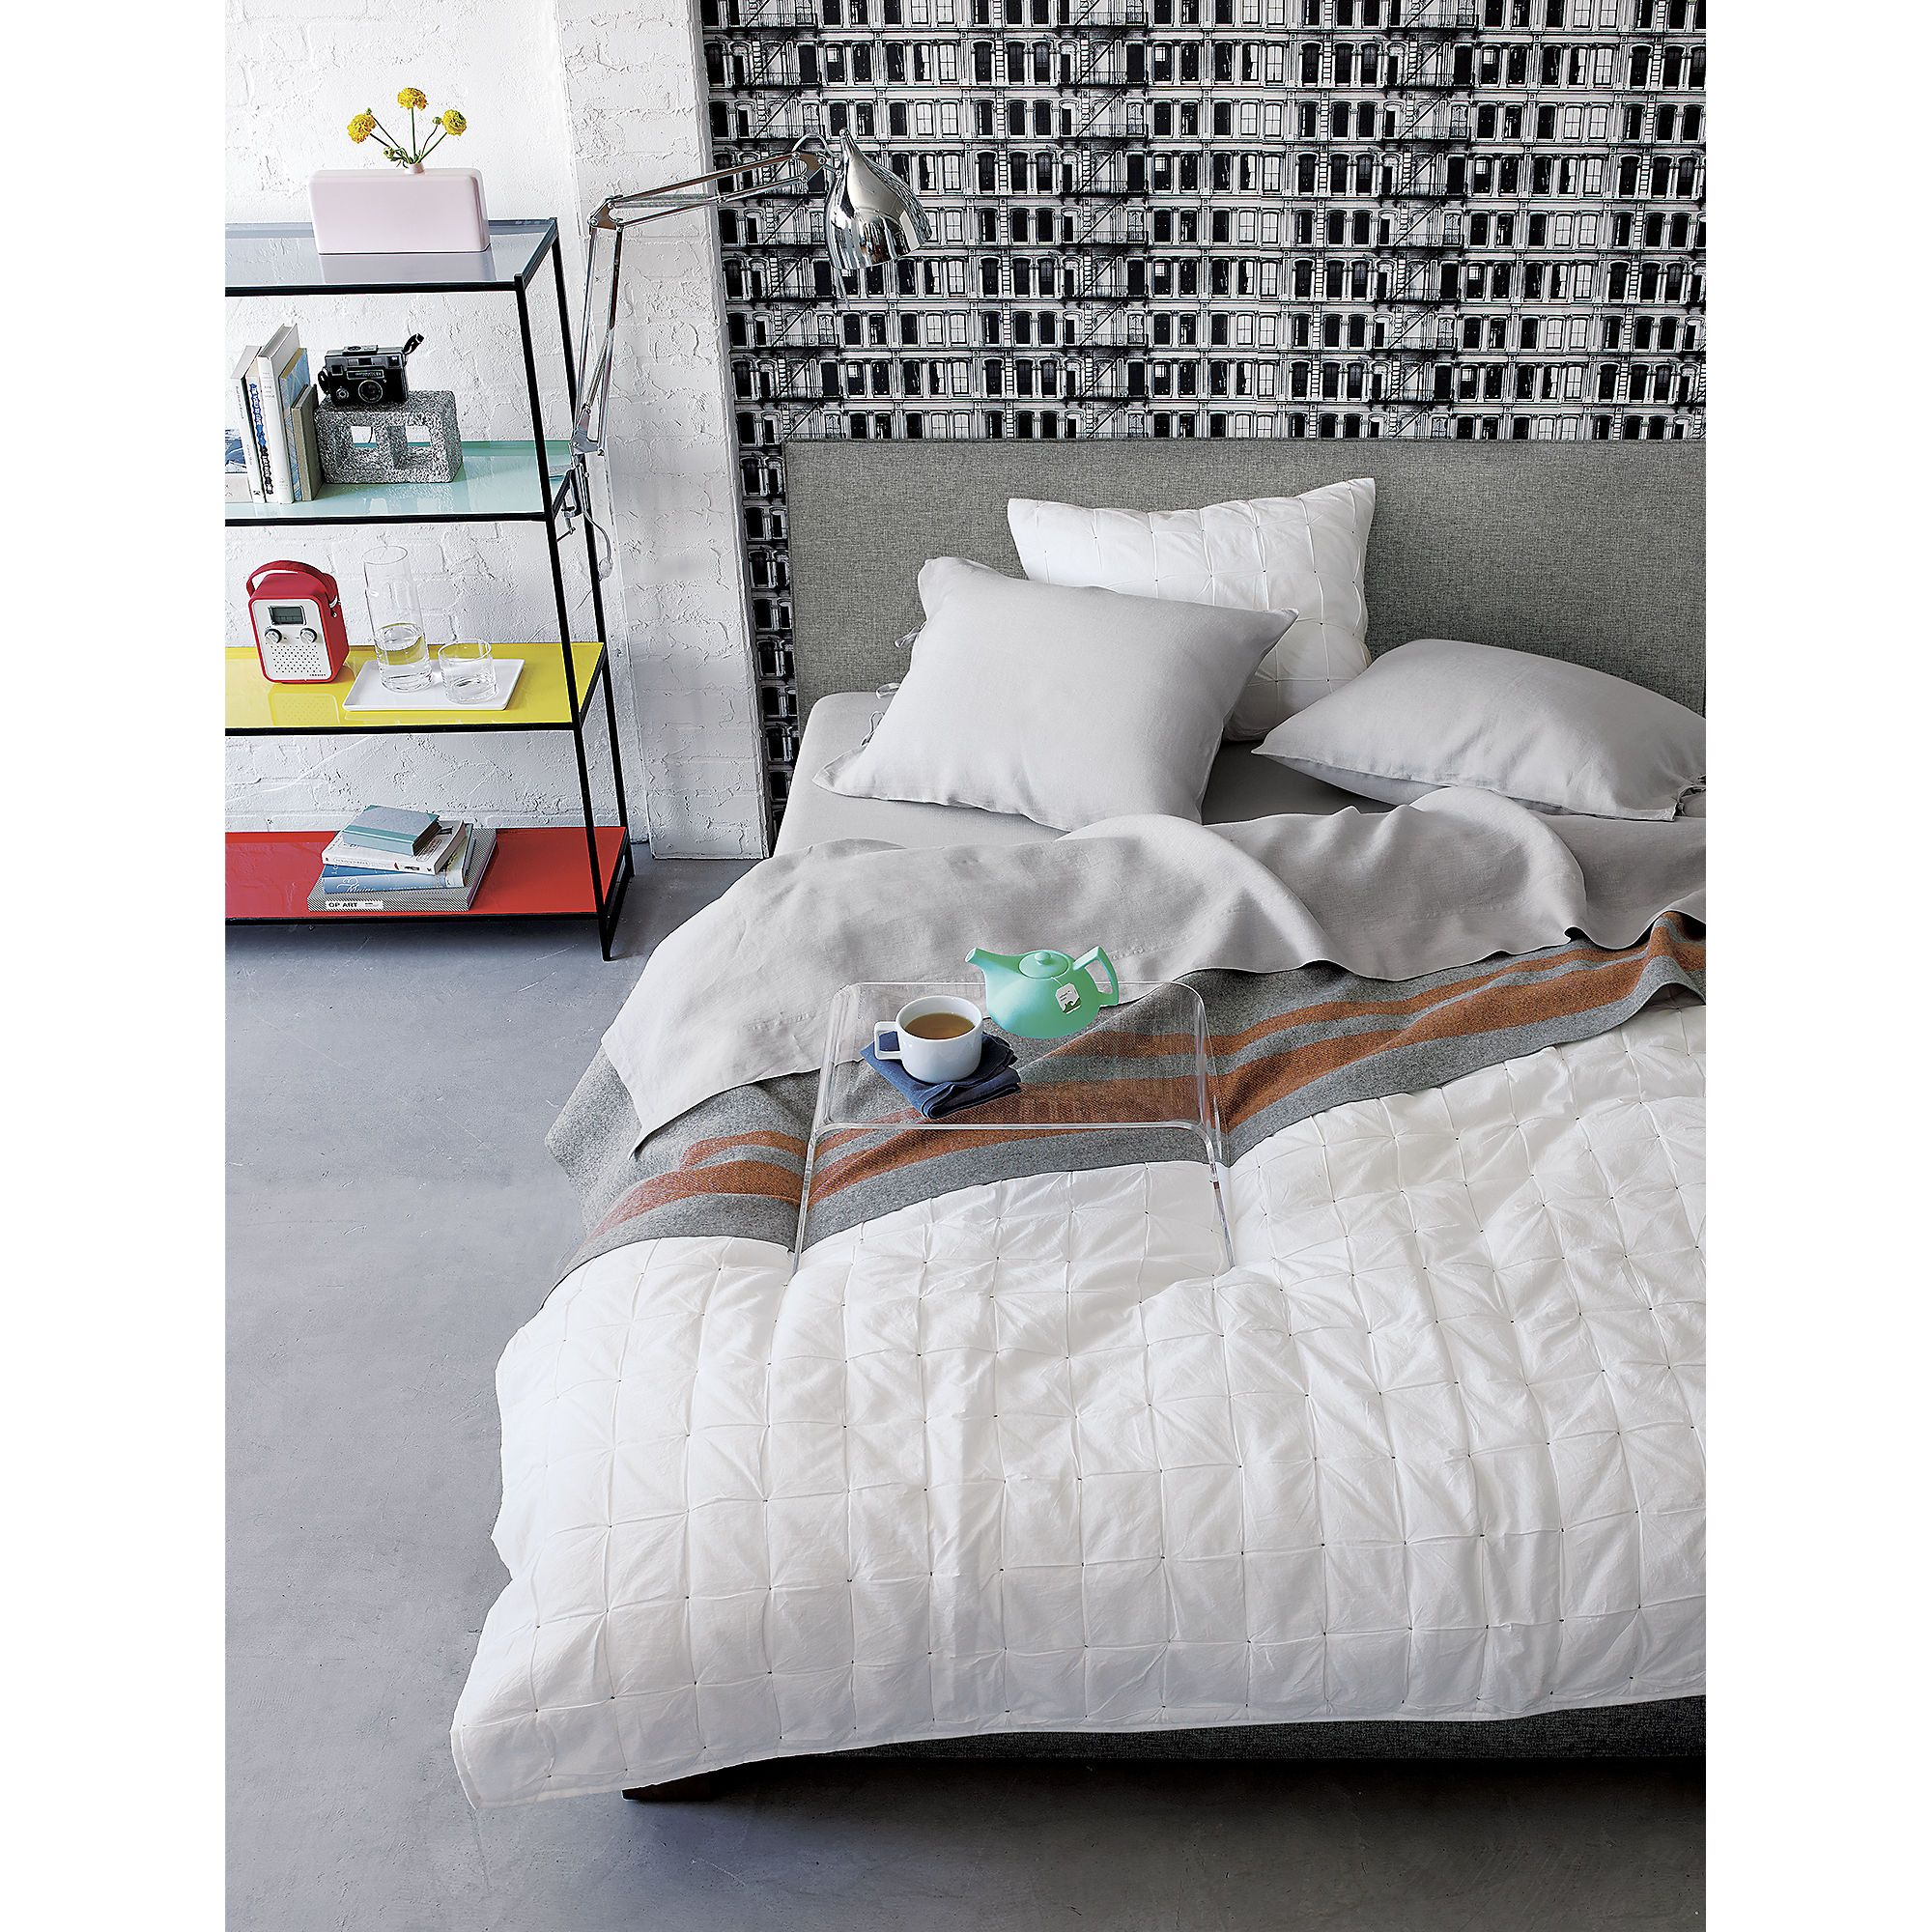 6d8cffc0bf4b Façade Grey Bed | bedroom | Grey upholstered bed, Bed tray, Bed ...